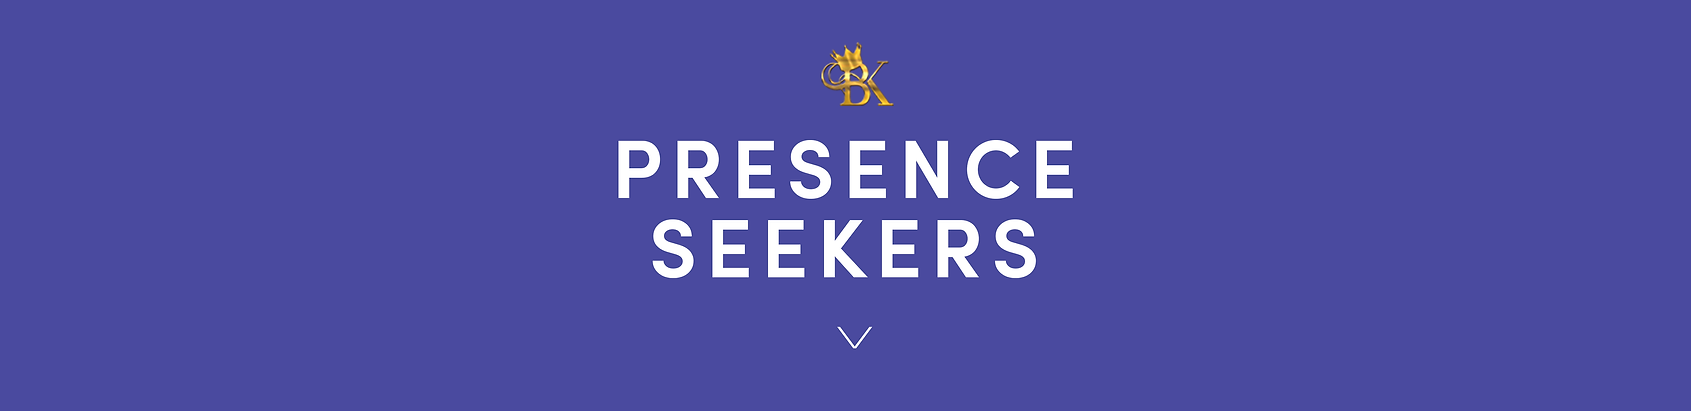 bkim presense seekers (1).png